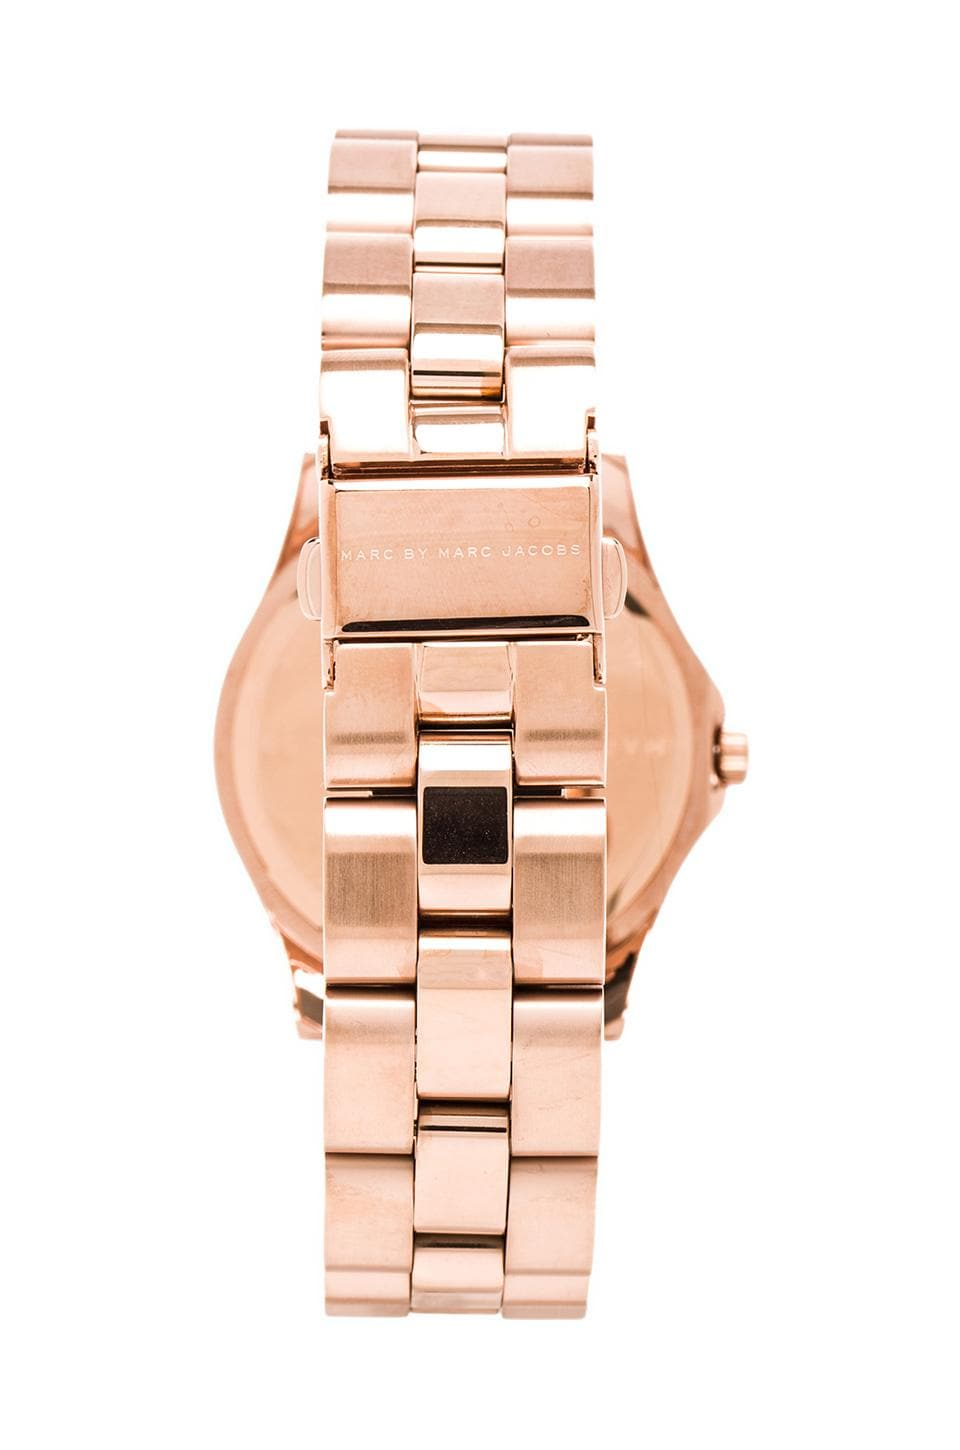 Marc by Marc Jacobs Blade Watch in Rose Gold